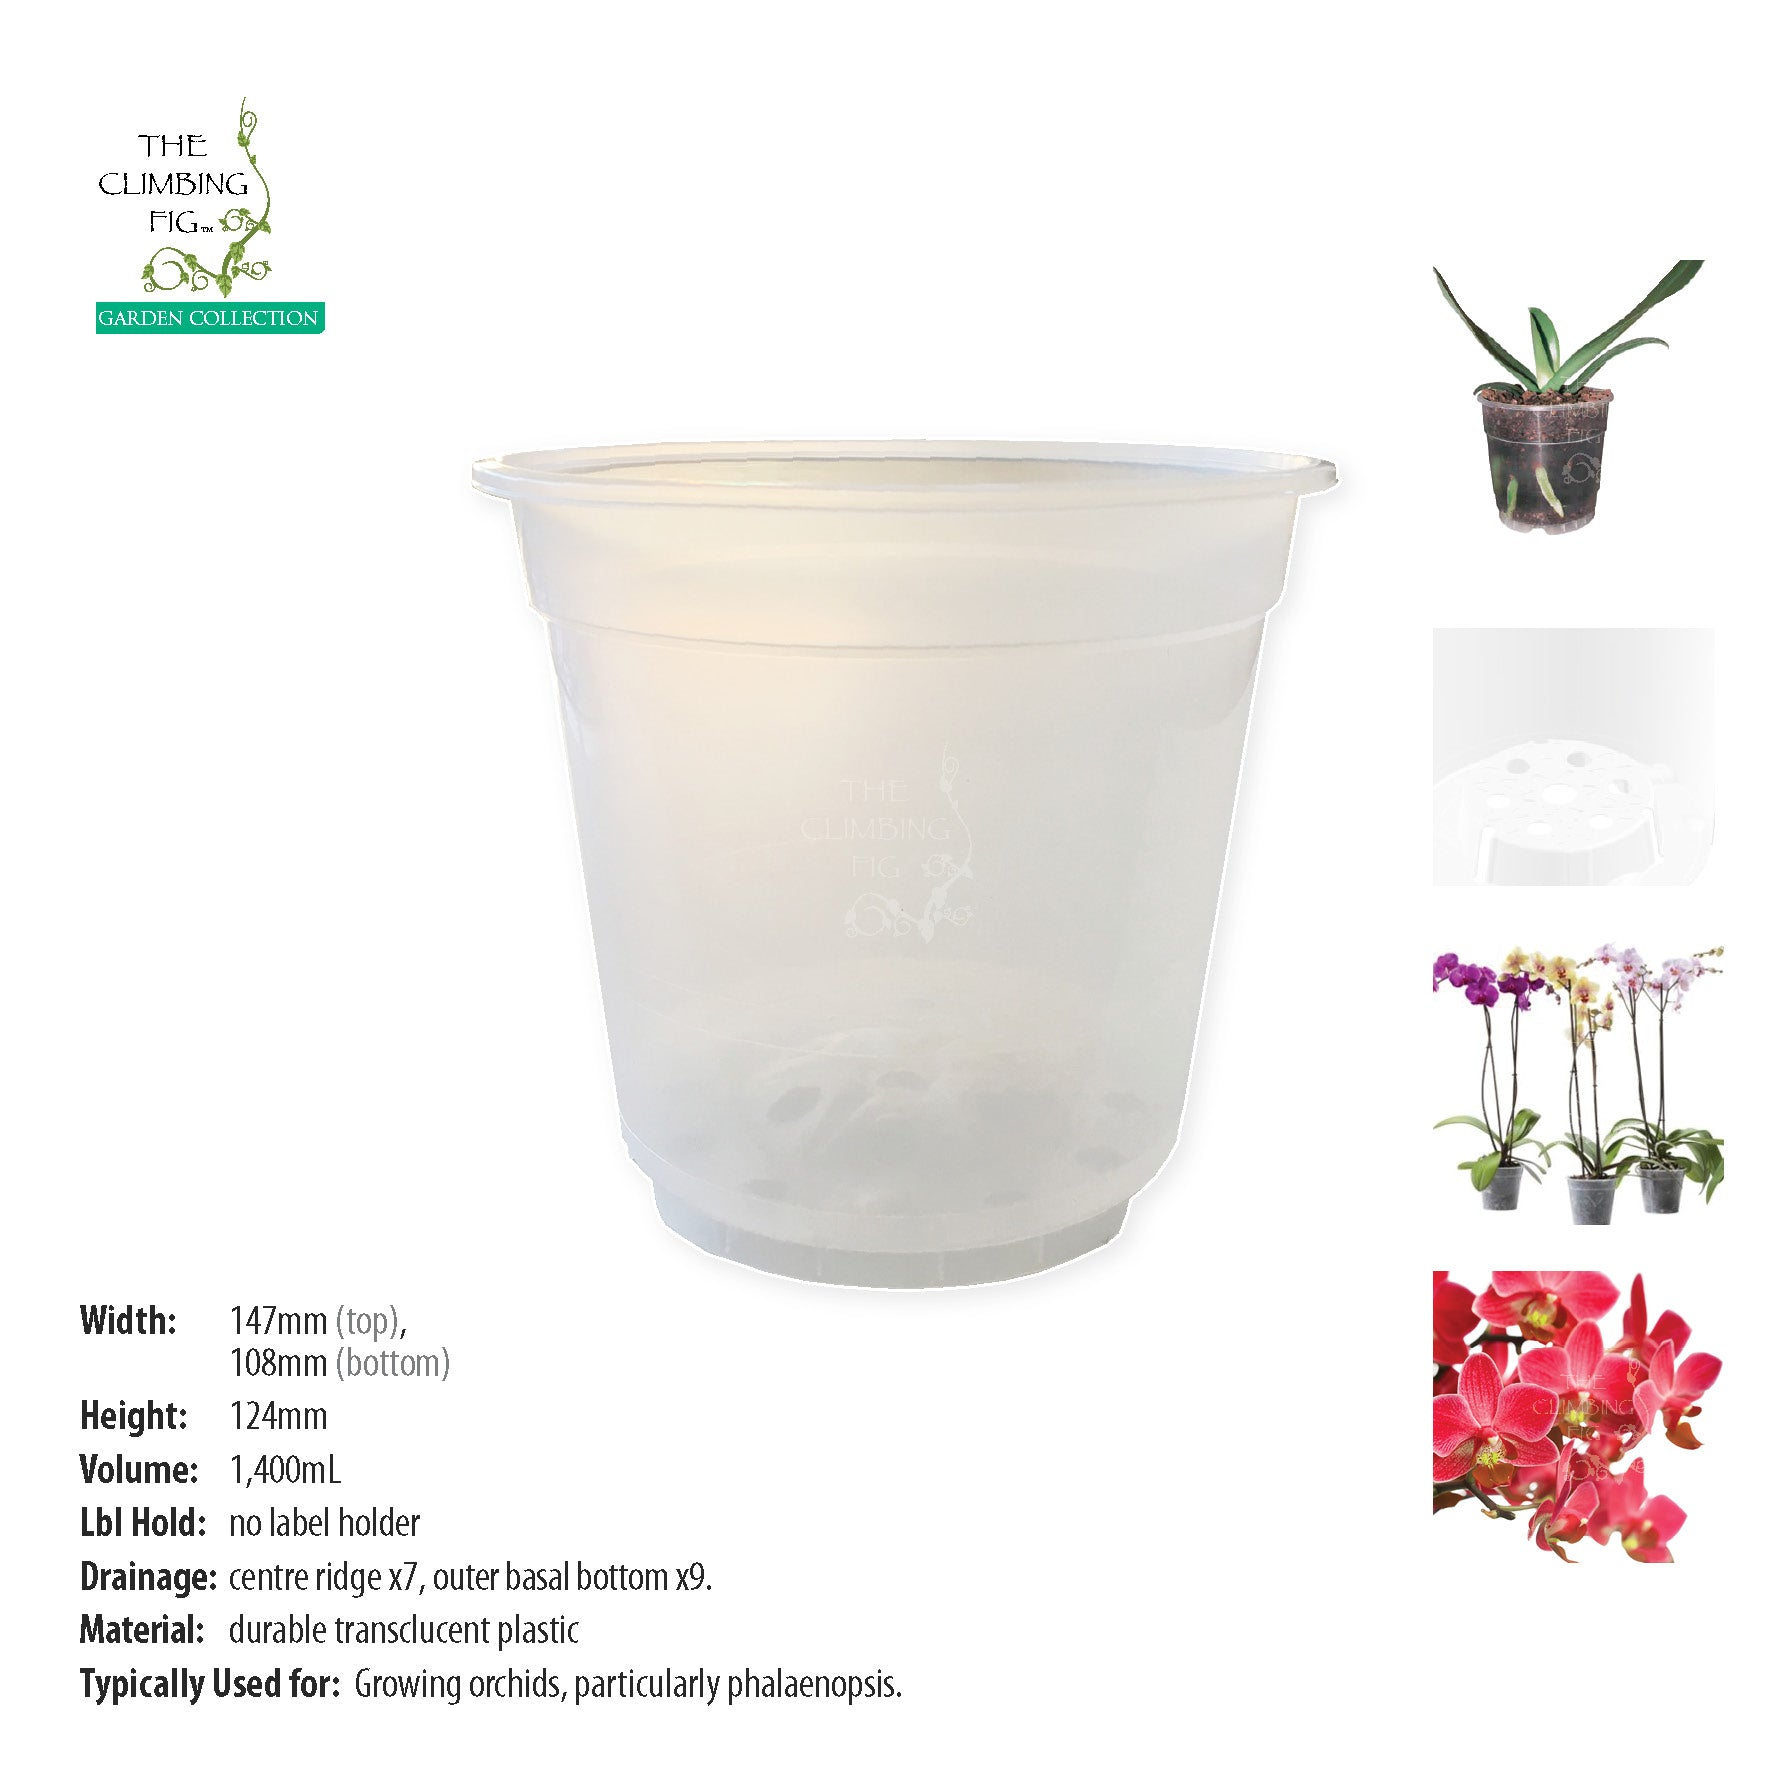 150mm Teku Round CLEAR Plastic Pots. Suits phalaenopsis & other orchid plants